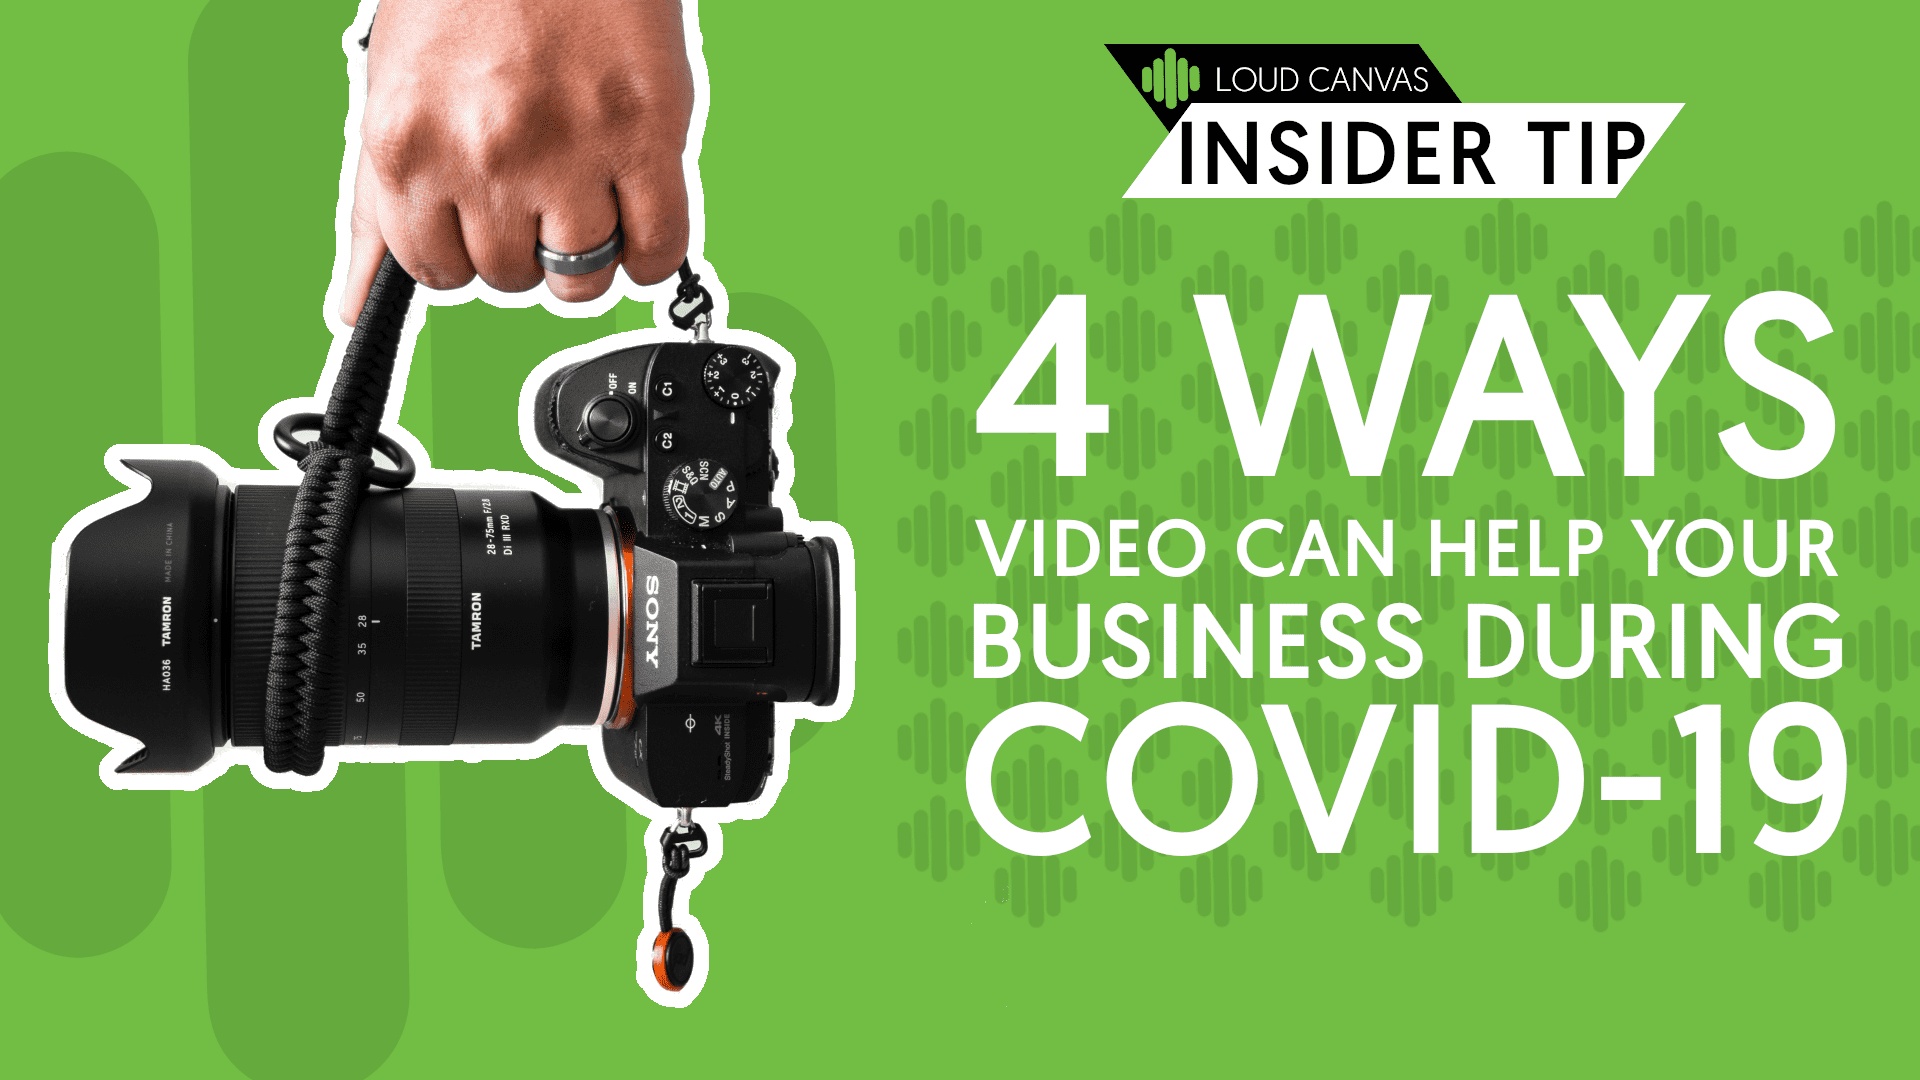 Keep Your Business Running With Video